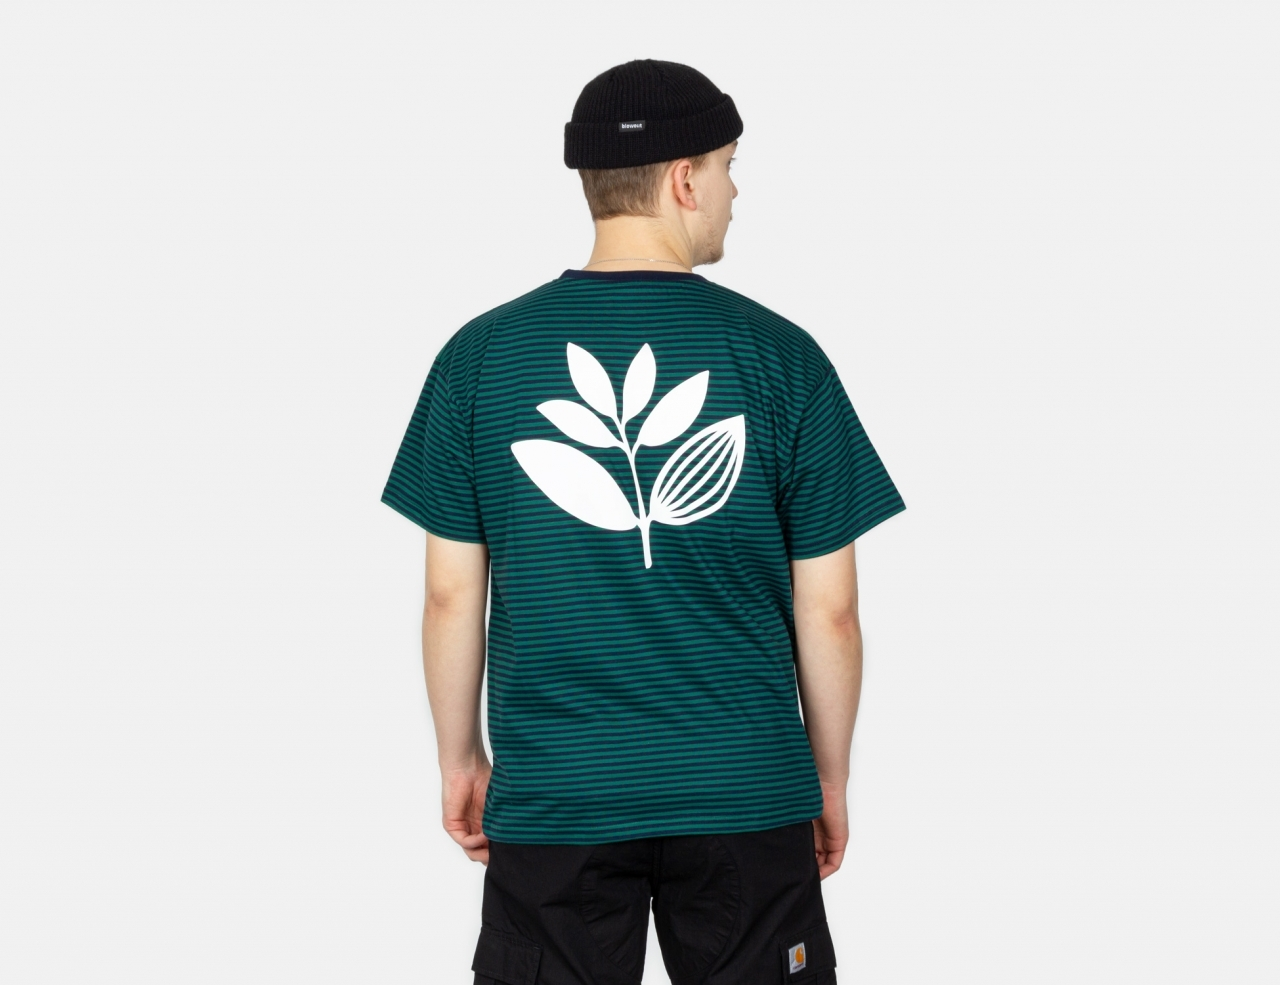 Magenta Striped Plant T-Shirt - Navy Green / Green